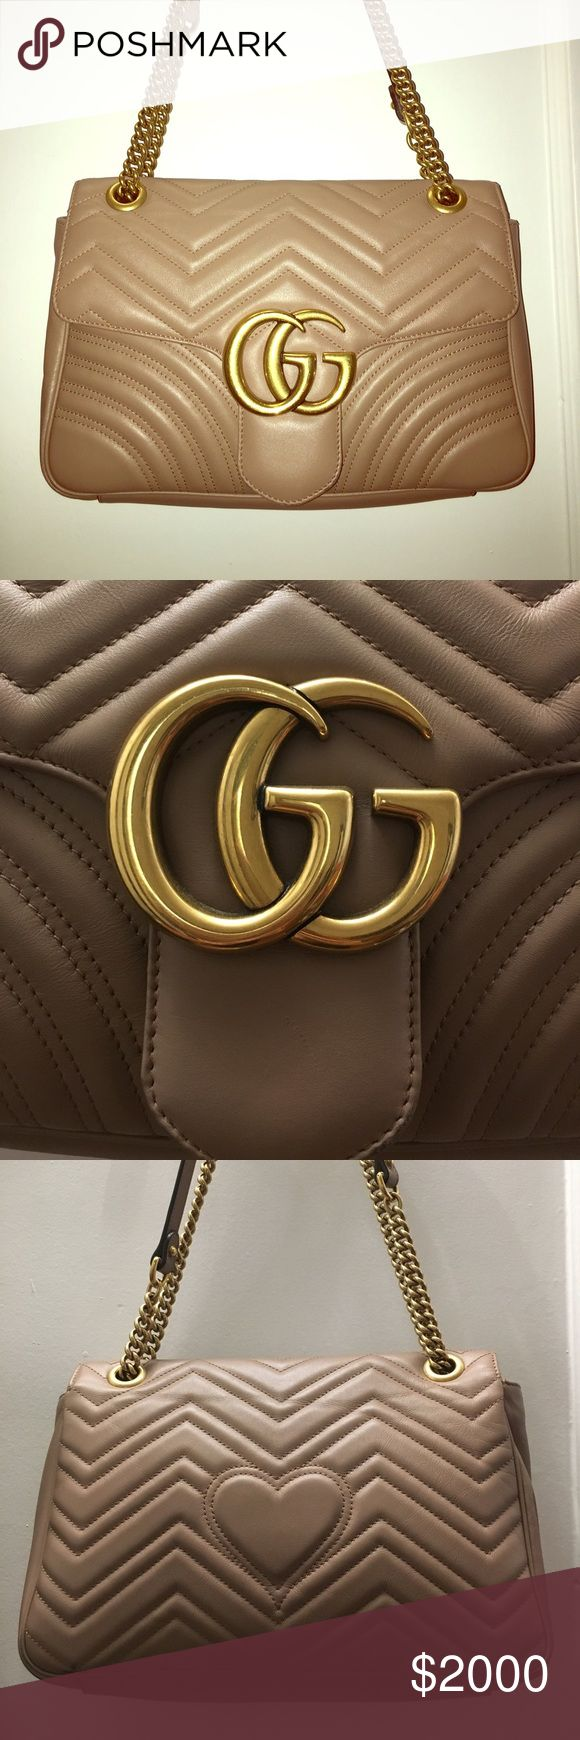 """GUCCI GG Marmont matelassé shoulder bag - beige Authentic Gucci GG Marmont bag from 2017 Collection. Beige nude matelassé chevron leather with a heart - Antique gold toned hardware Double G - Internal zip and smartphone pockets with an open horizontal case for larger phones - Sliding chain strap can be worn as a shoulder strap with 22"""" drop or can be worn as a top handle with 12"""" drop Flap with spring closure Medium size: 12""""W x 7.5""""H x 3""""D Microfiber lining with a suede-like finish Made in…"""